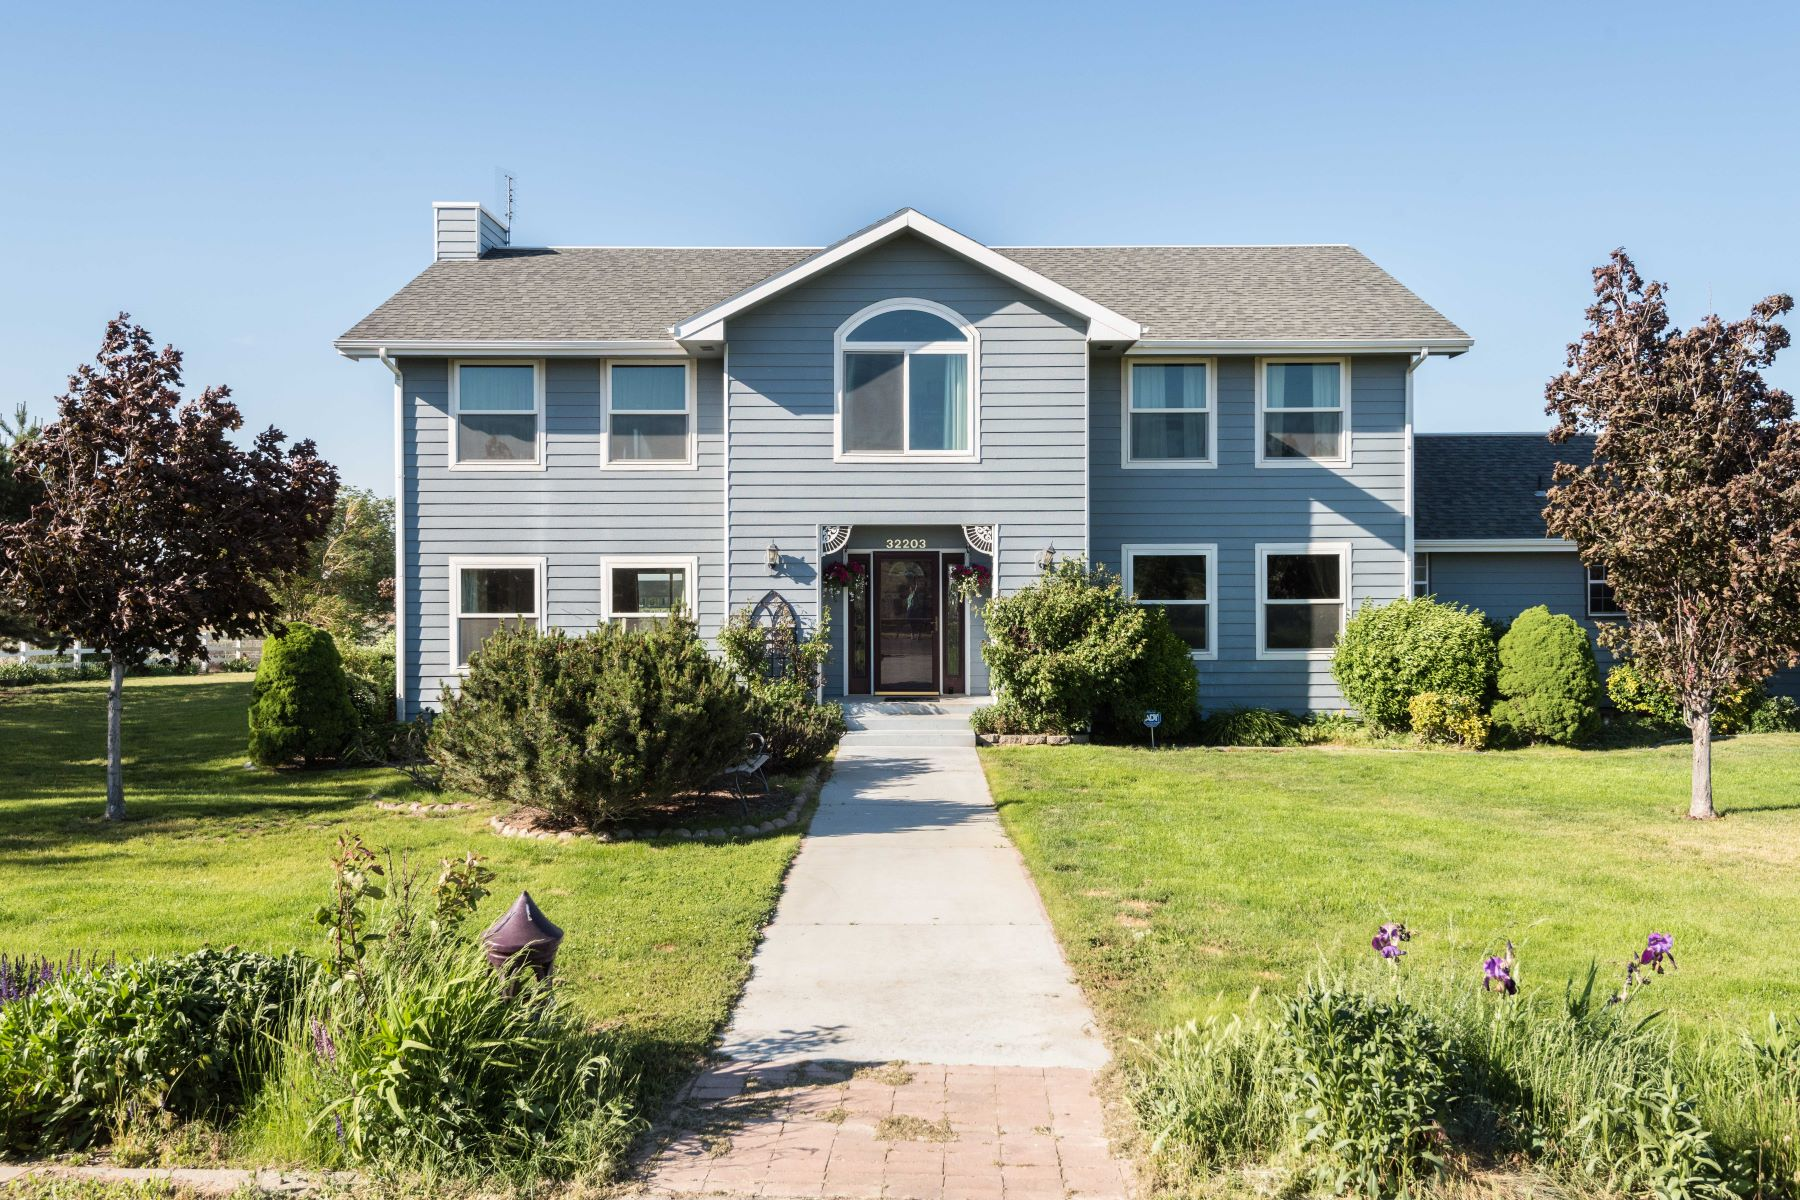 Single Family Home for Sale at Beautiful 2 story home in the country on 15+ acres! 32203 S Clodfelter Road Kennewick, Washington 99338 United States